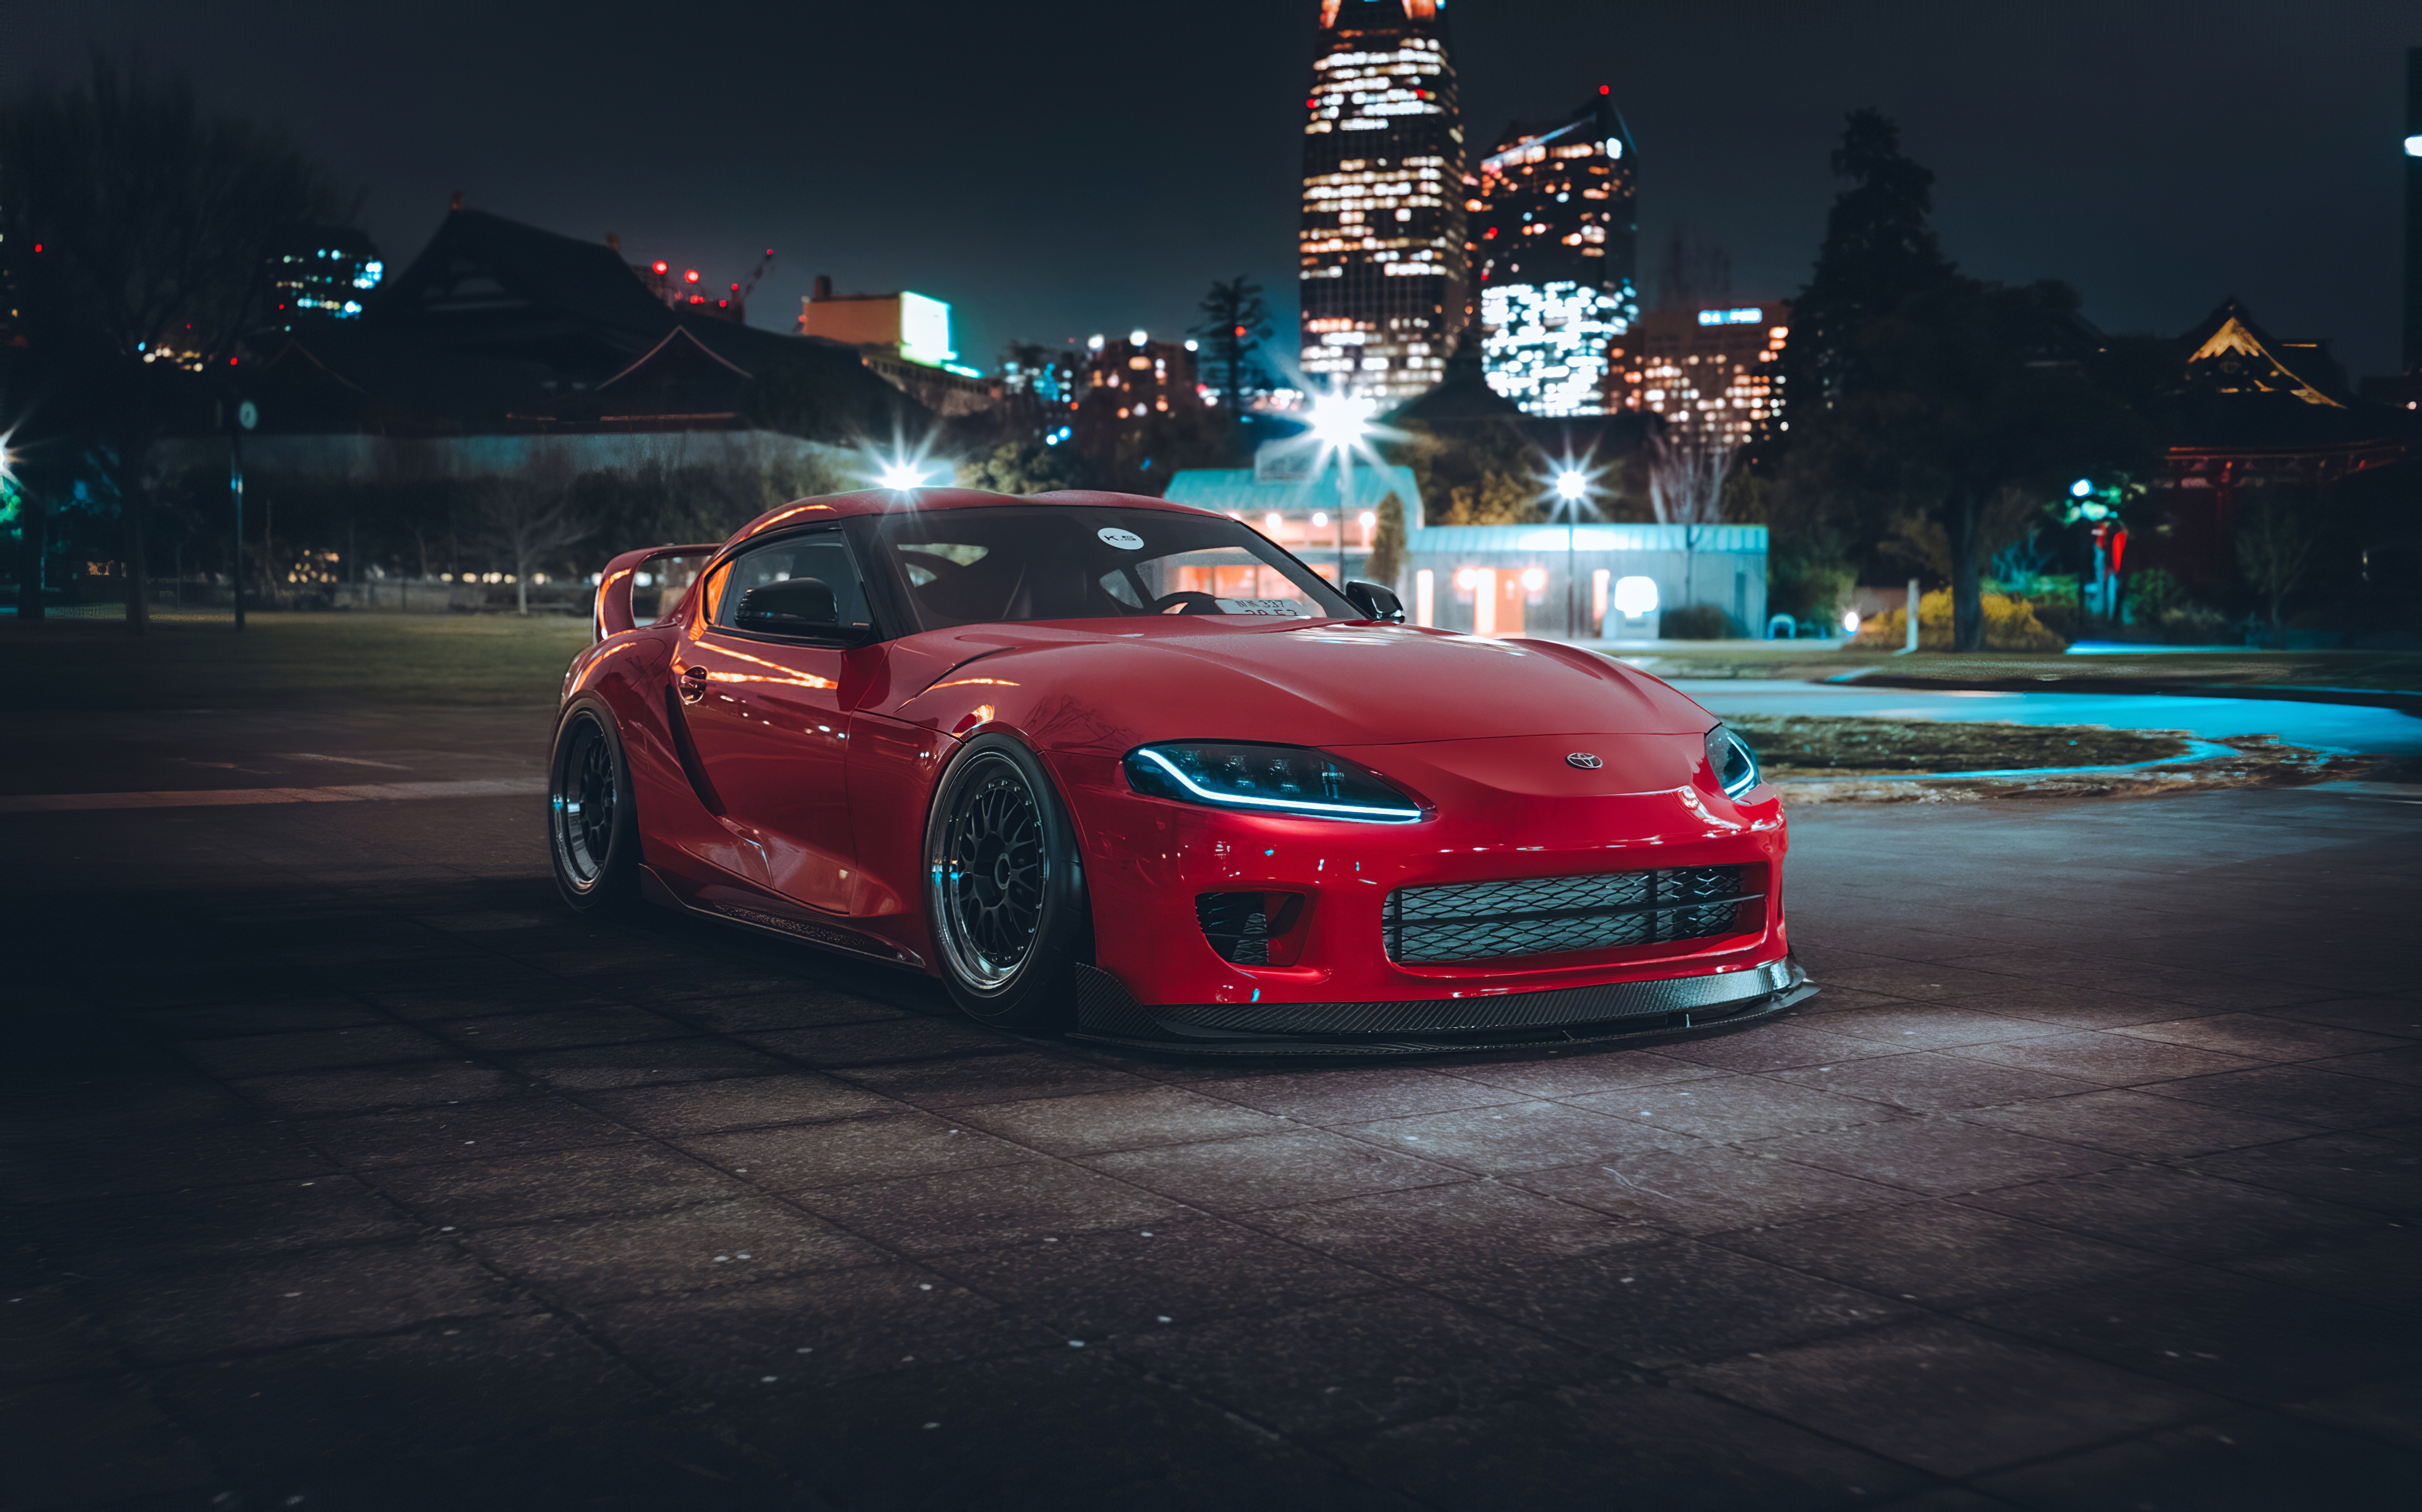 Toyota Supra 2020 Tuned 4k Hd Cars 4k Wallpapers Images Backgrounds Photos And Pictures